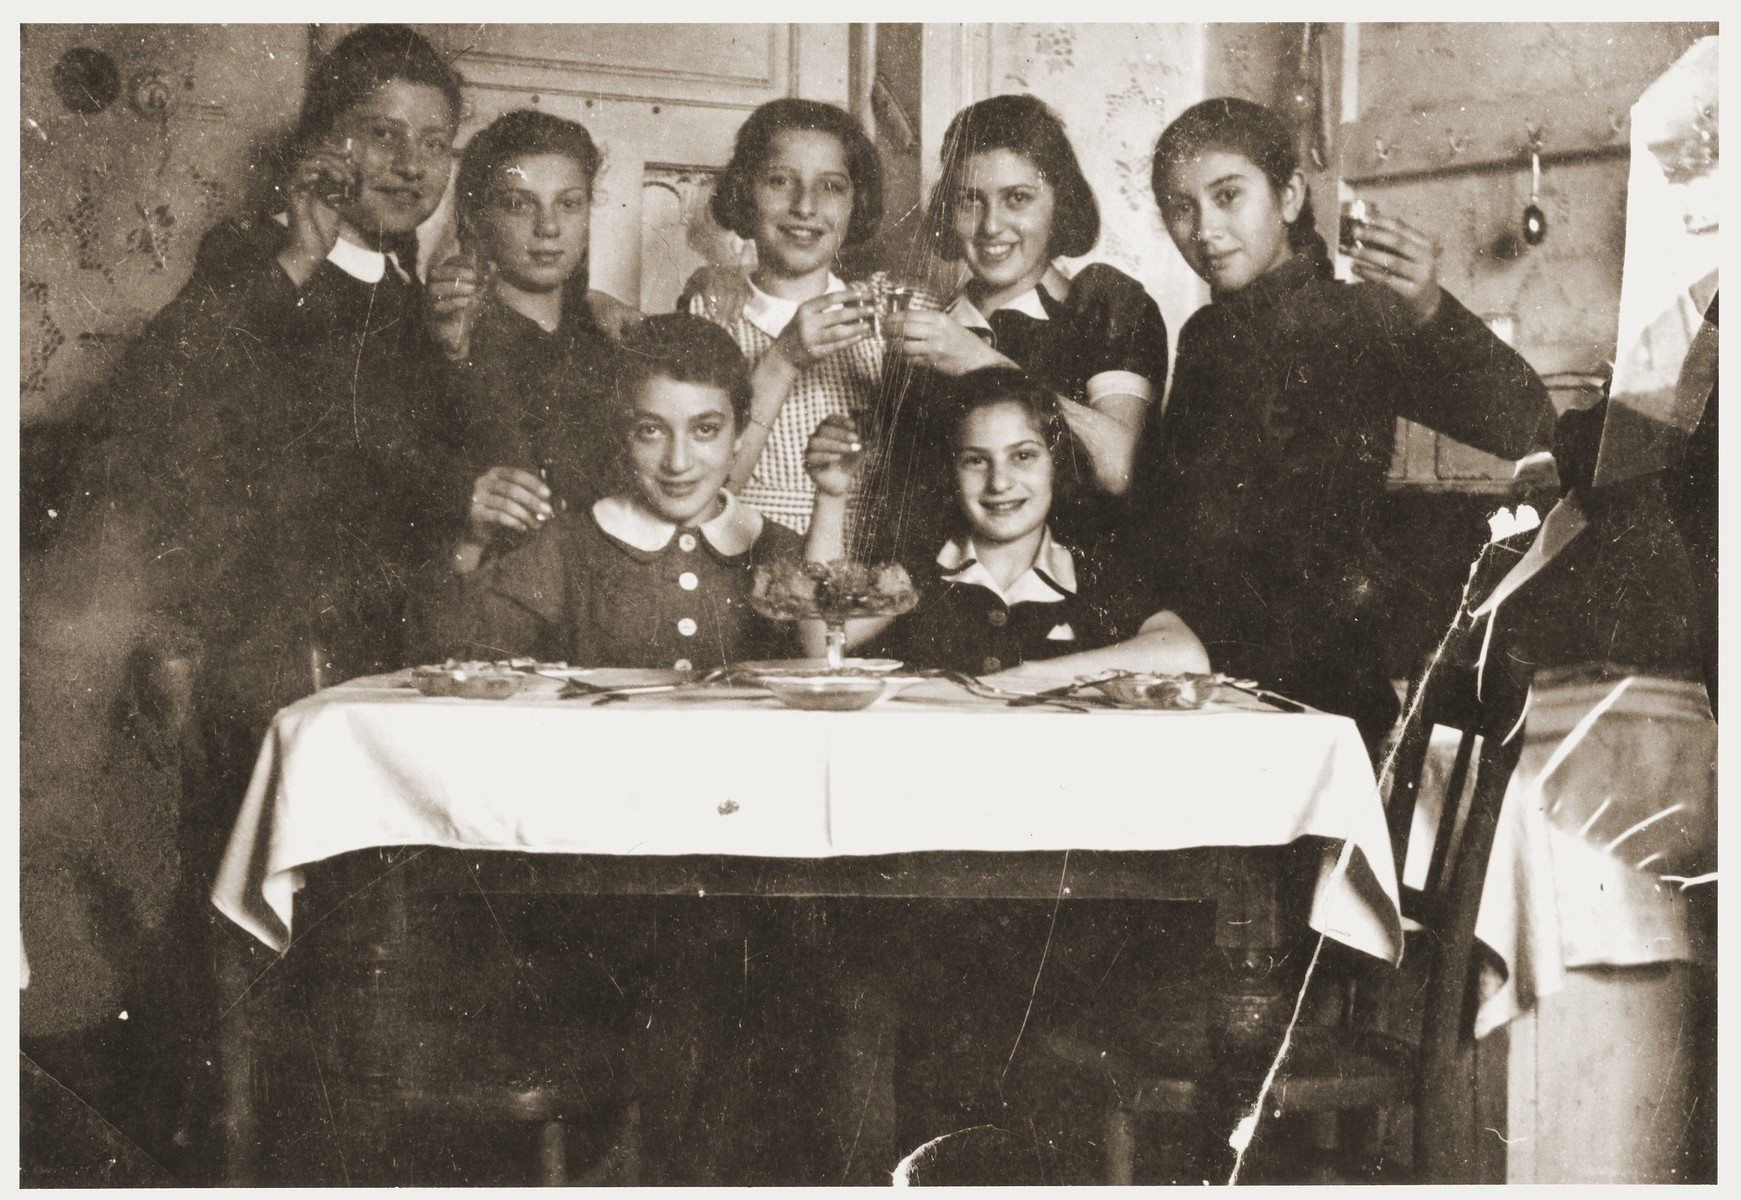 A group of Jewish girls in the Zabno ghetto toast their friend on her twelfth birthday.    Pictured are Hania Goldman (the birthday girl, standing in the middle), and her sister, Rachela (standing on the left).